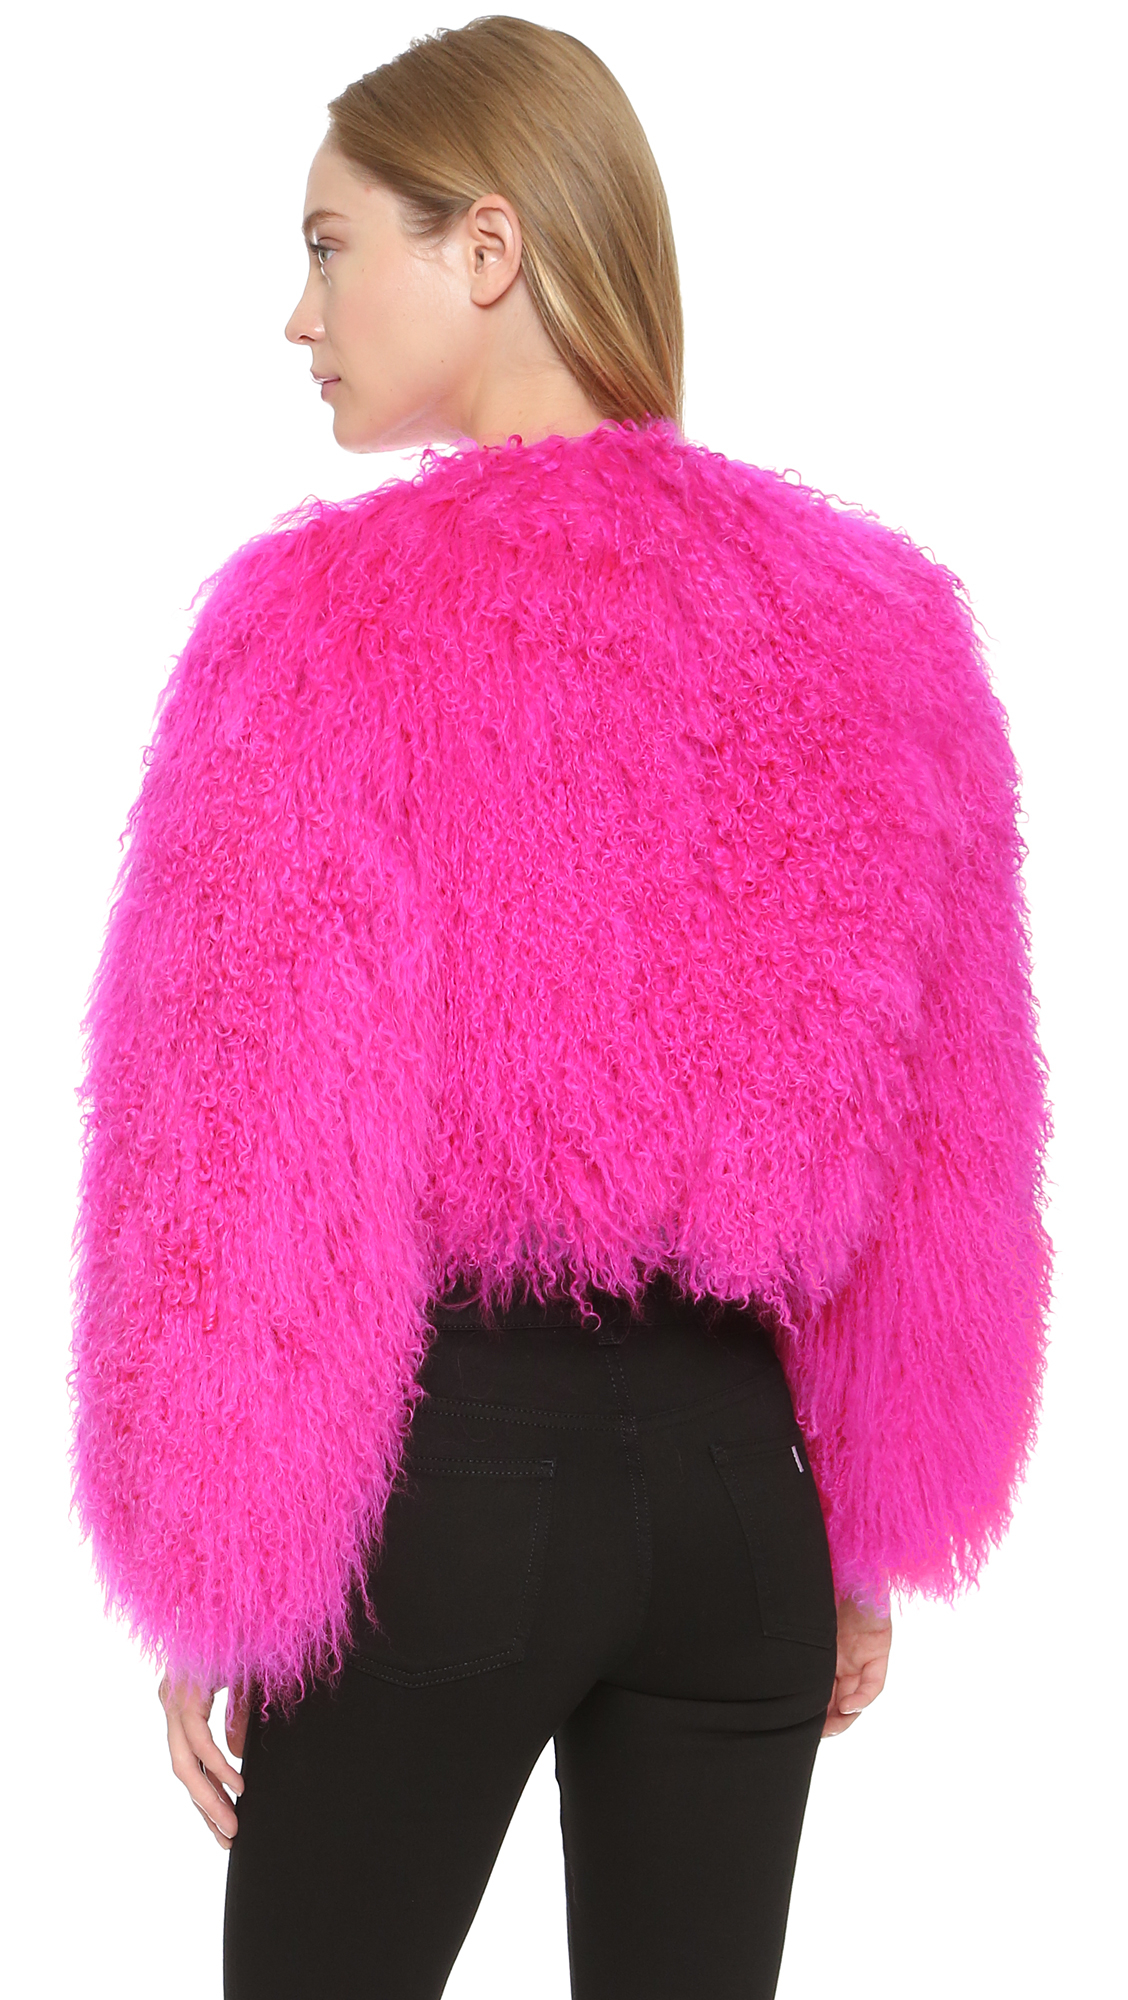 Boutique moschino Fur Jacket - Pink in Pink | Lyst